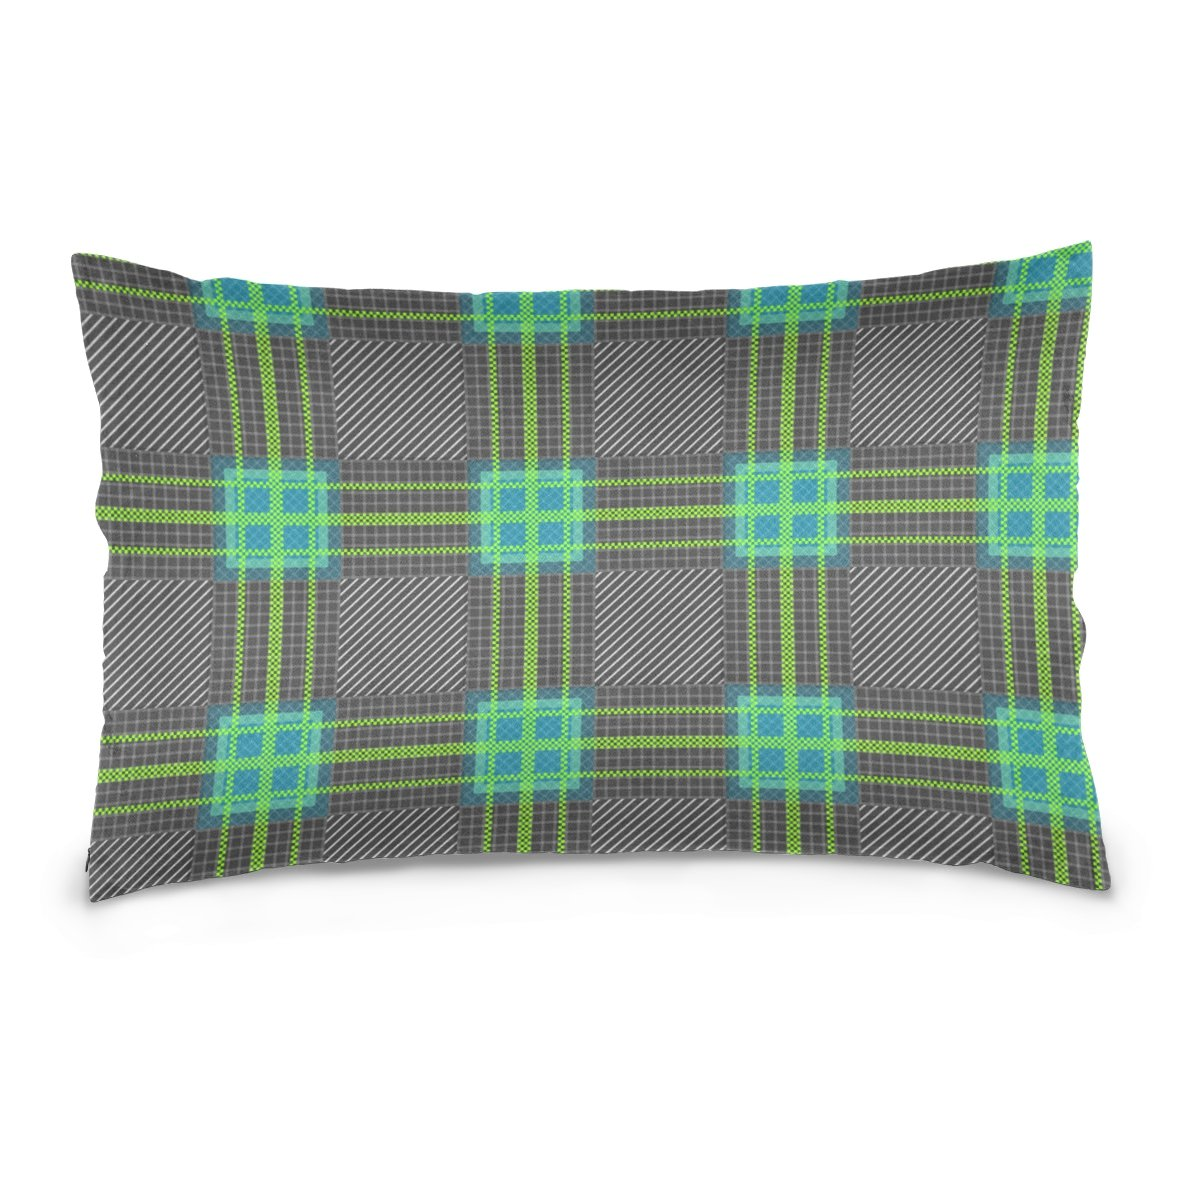 Top Carpenter Tartan Plaid Velvet Oblong Lumbar Plush Throw Pillow Cover/Shams Cushion Case - 20x36in - Decorative Invisible Zipper Design for Couch Sofa Pillowcase Only